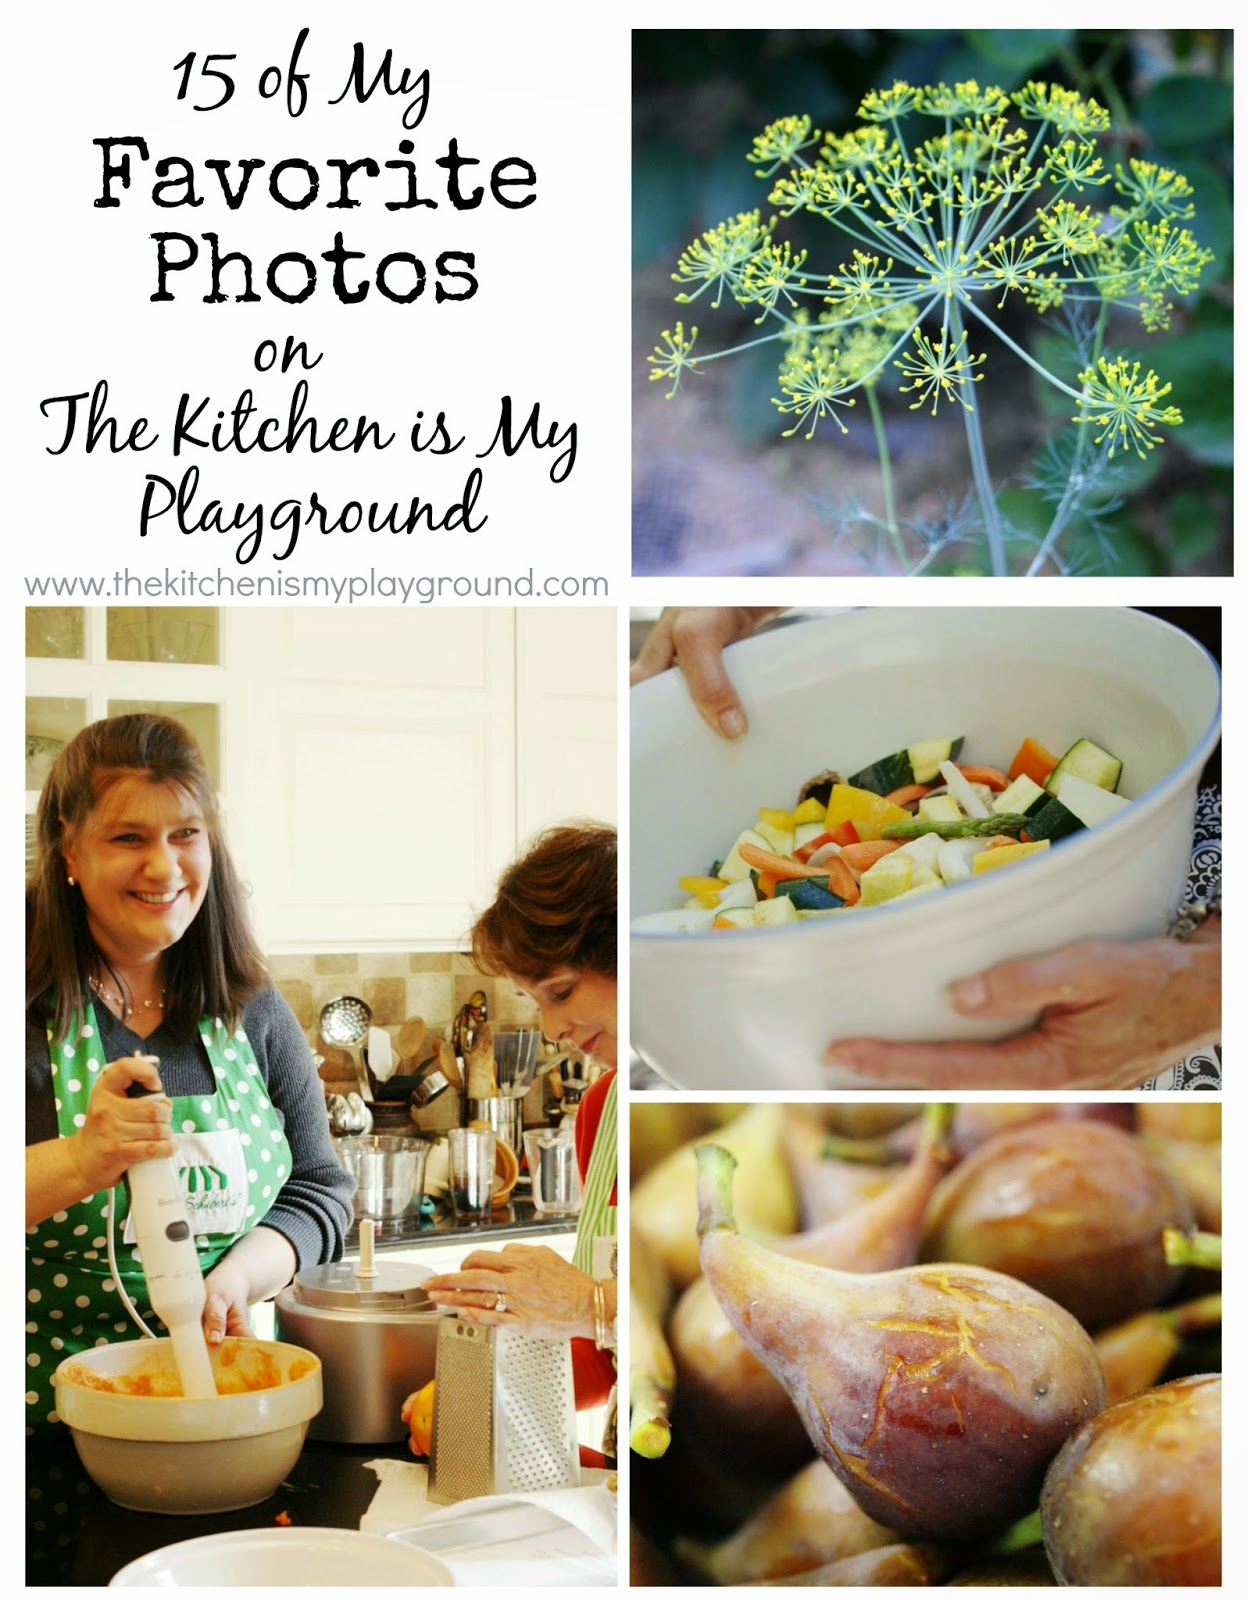 15 Favorite Photos from The Kitchen is My Playground